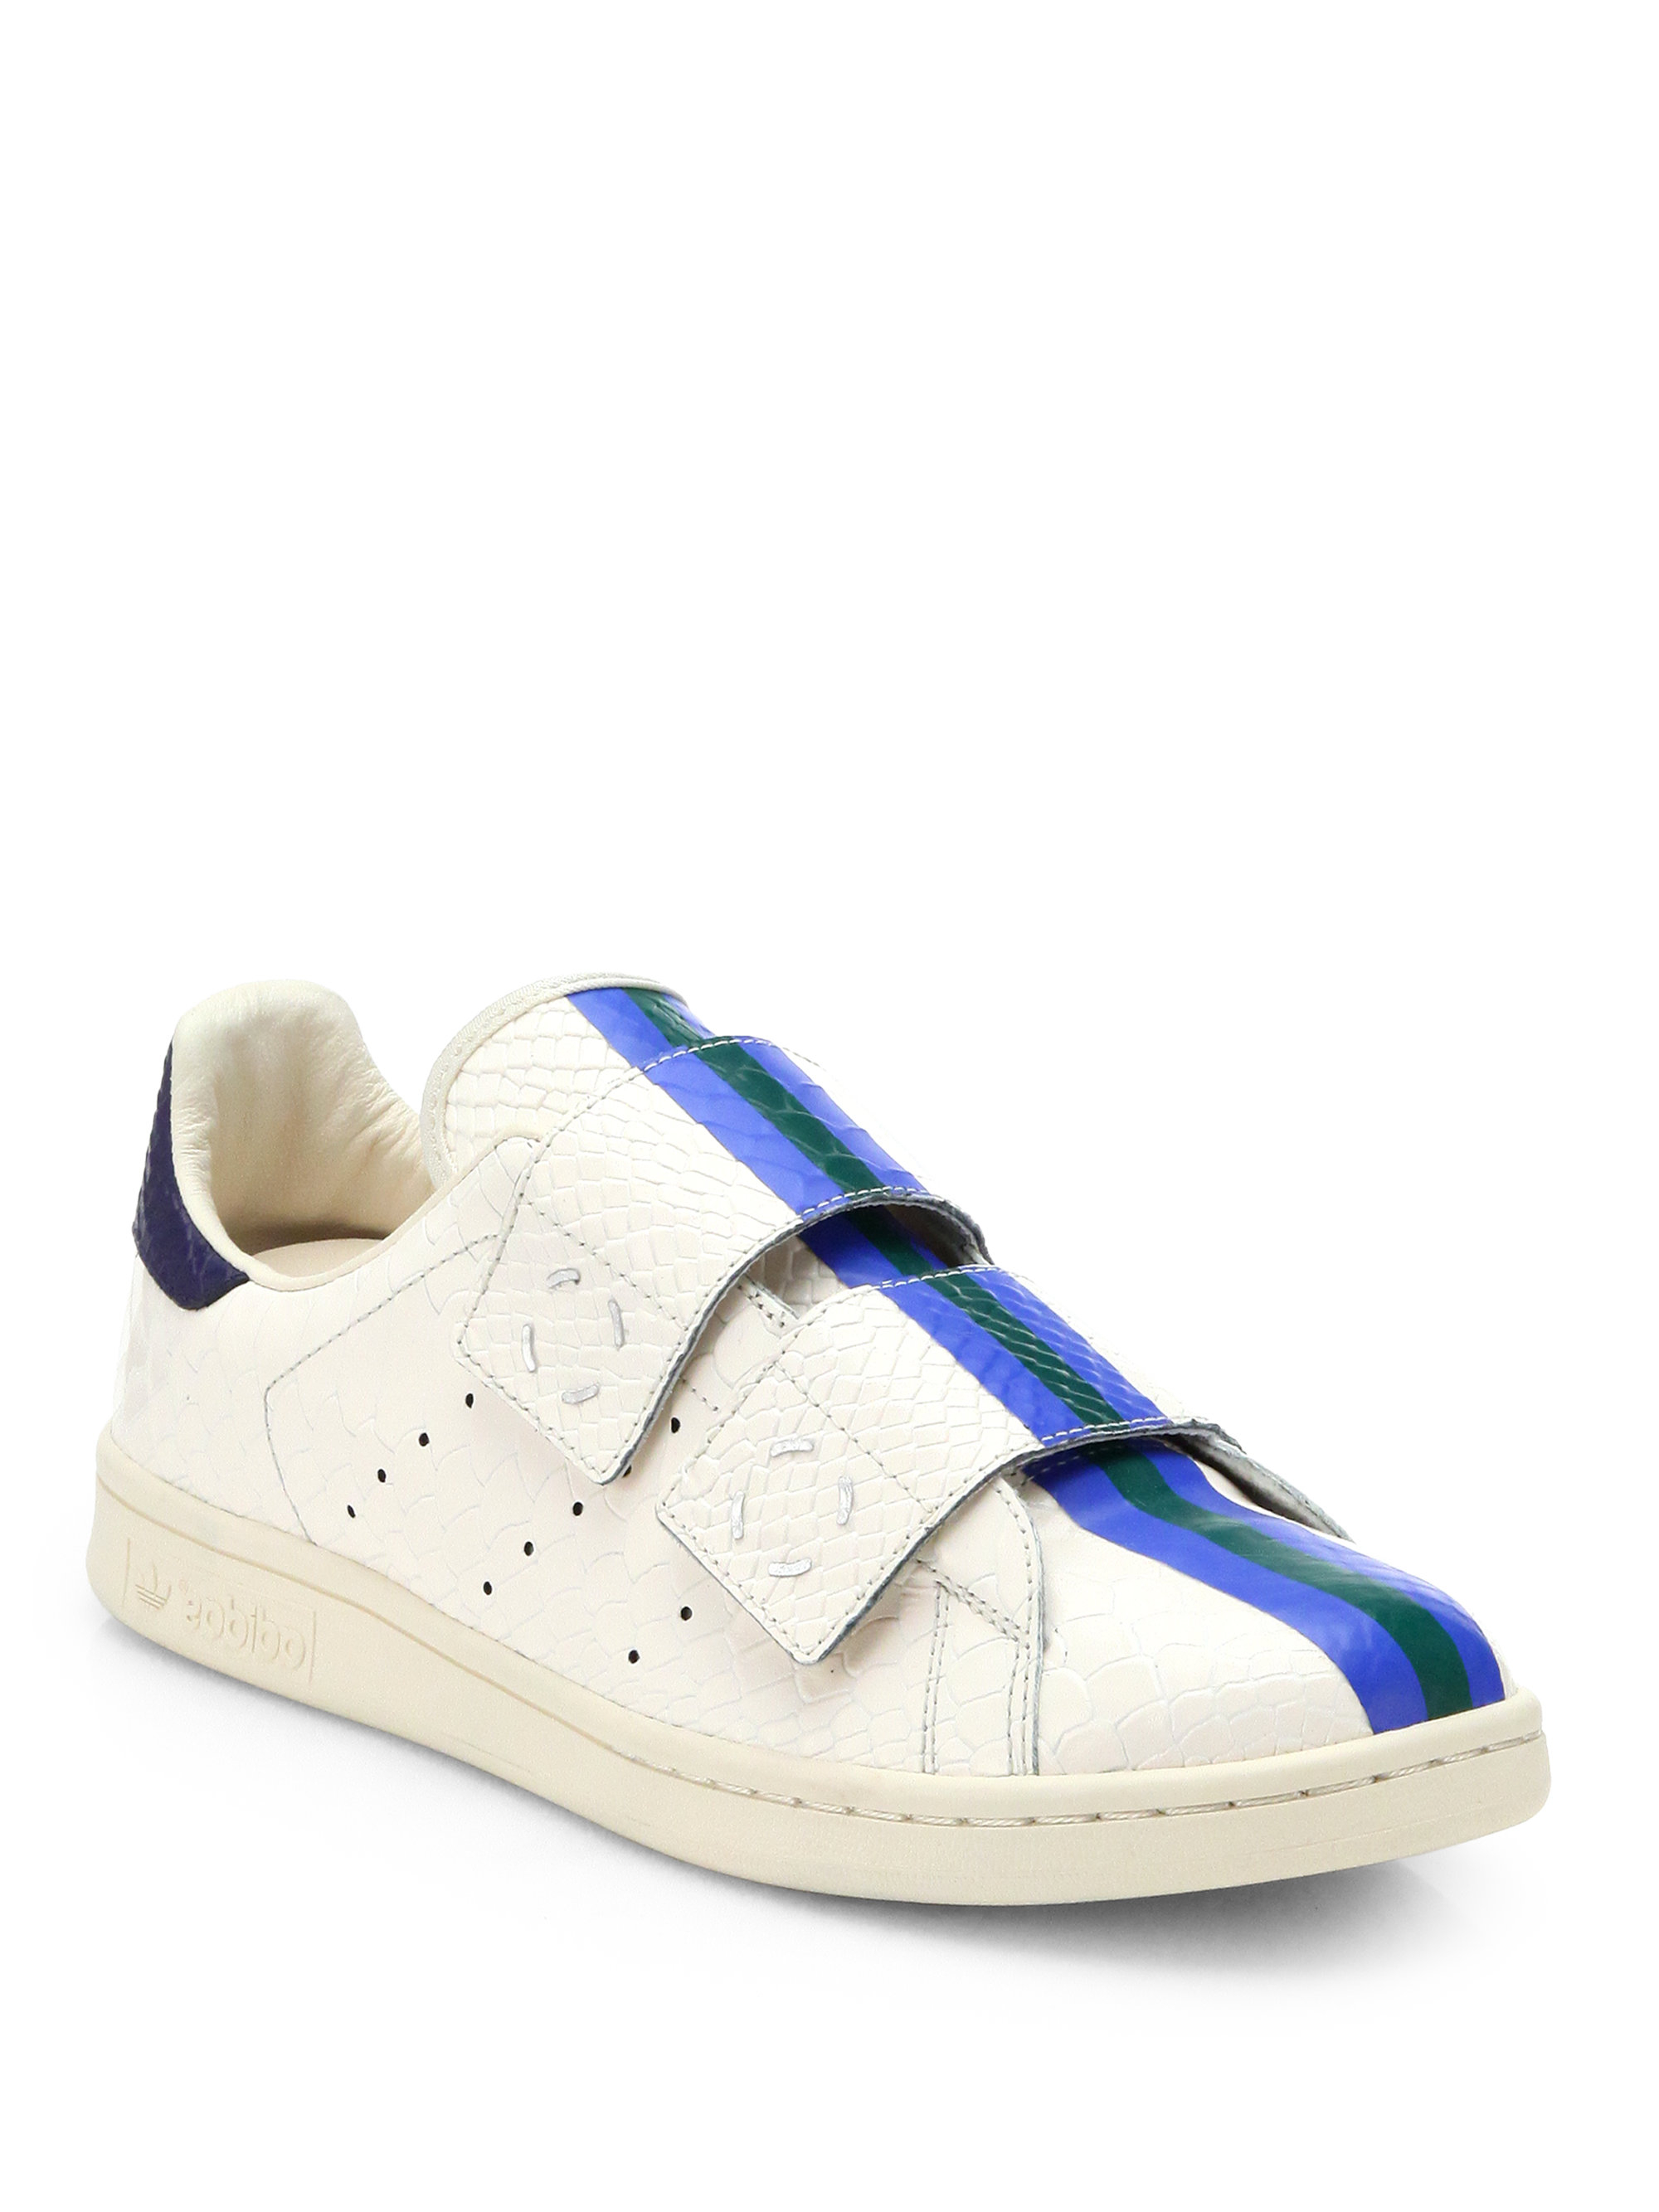 adidas by raf simons double velcro slipon sneakers in. Black Bedroom Furniture Sets. Home Design Ideas